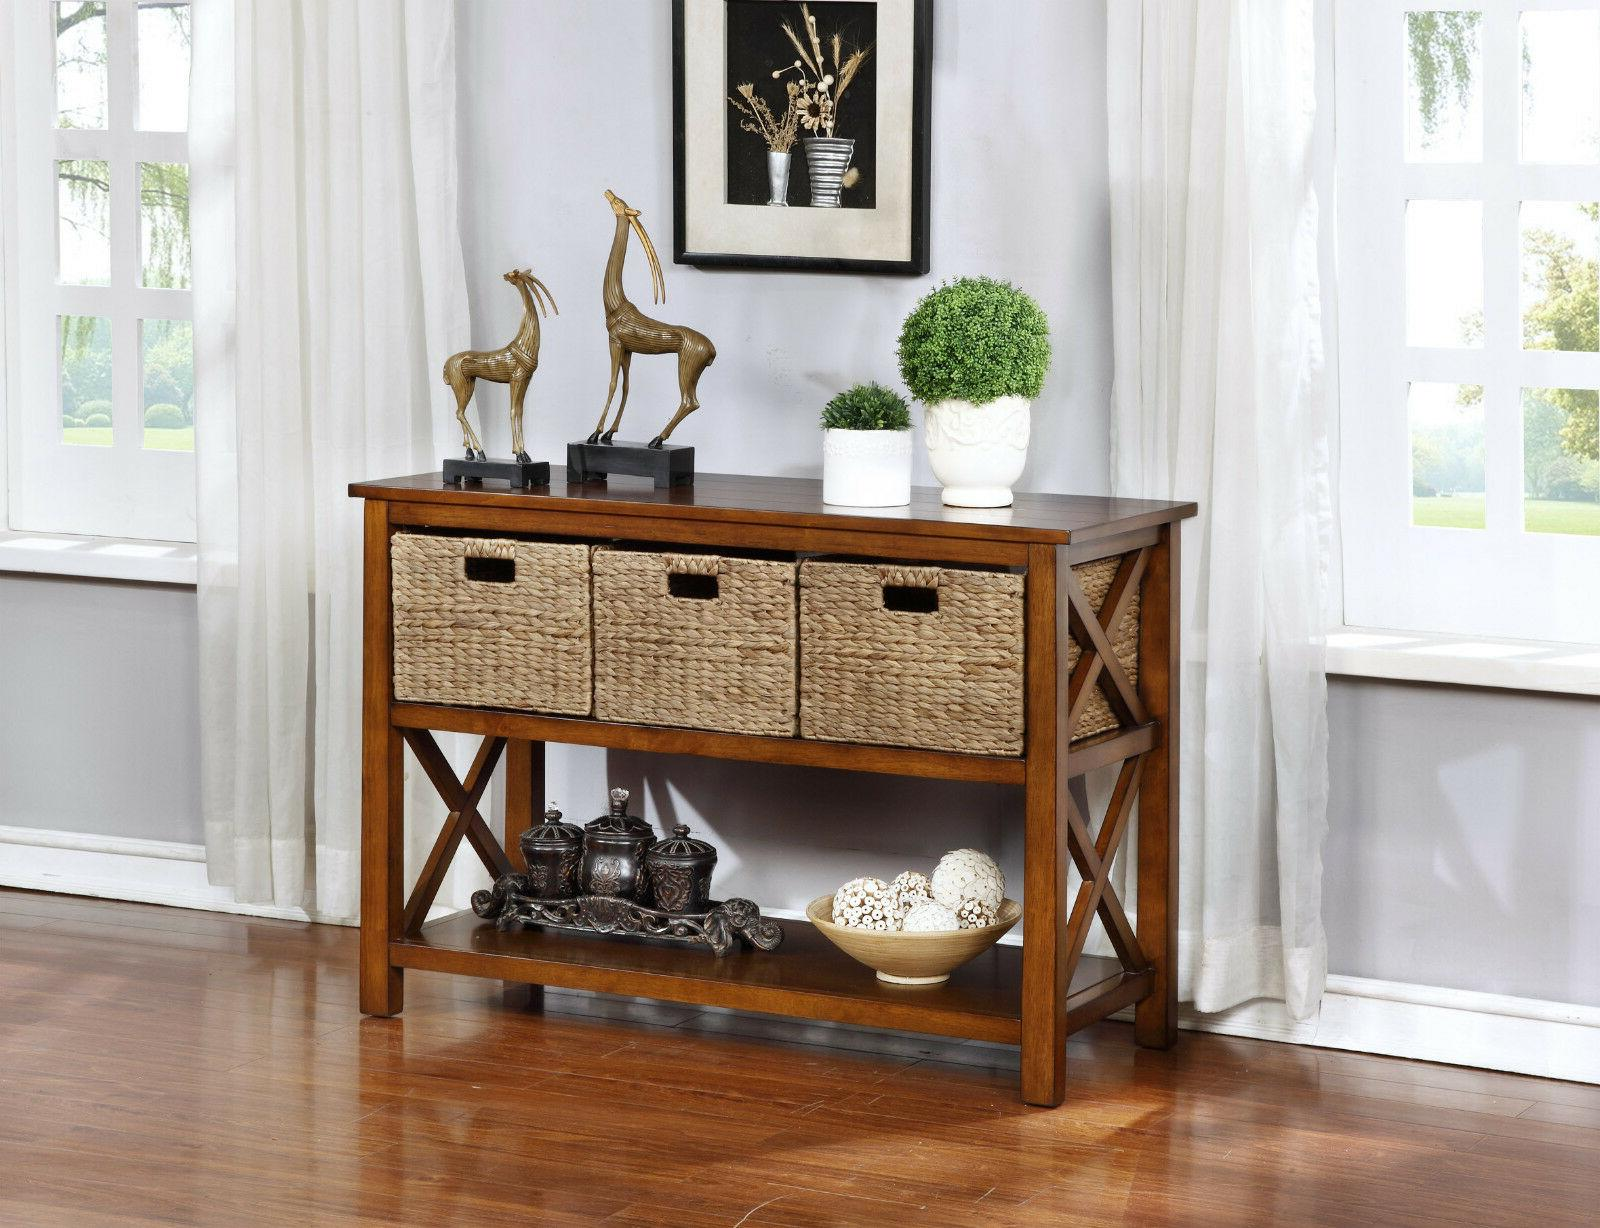 eHemco X Console Sofa Table with 2 Shelves and 3 Baskets